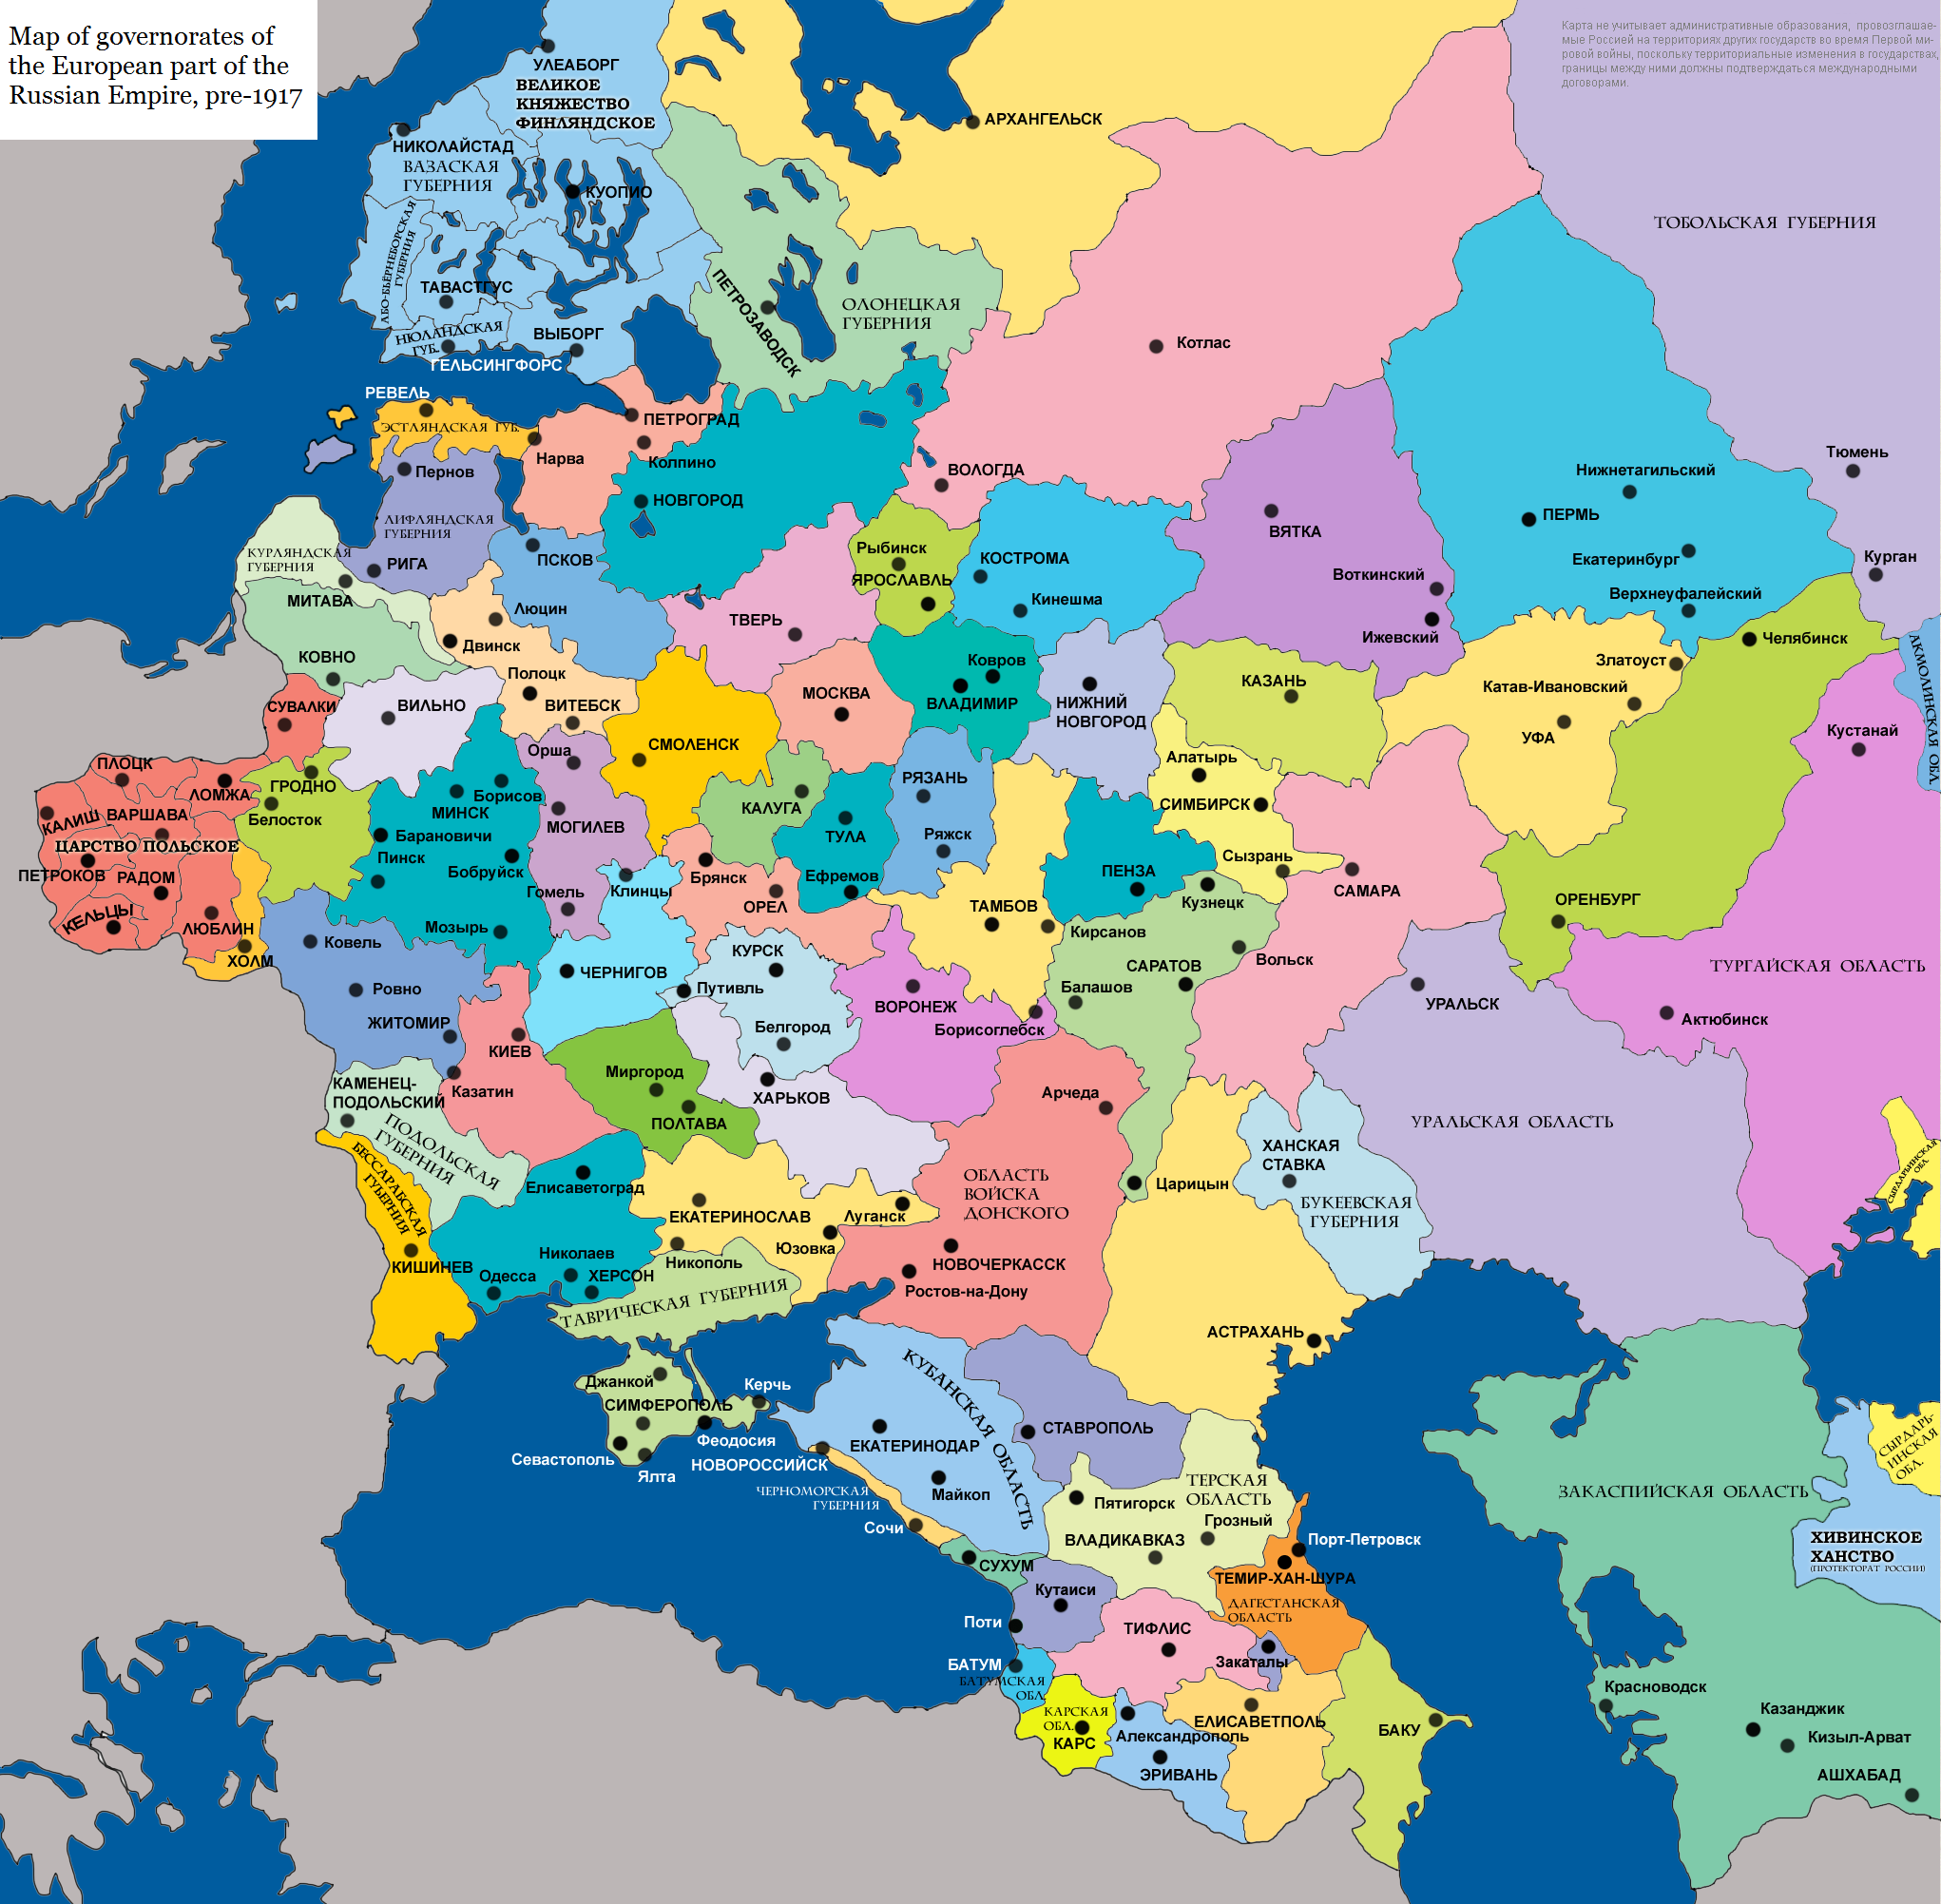 Map of governorates of the European part of the Russian Empire, pre-1917